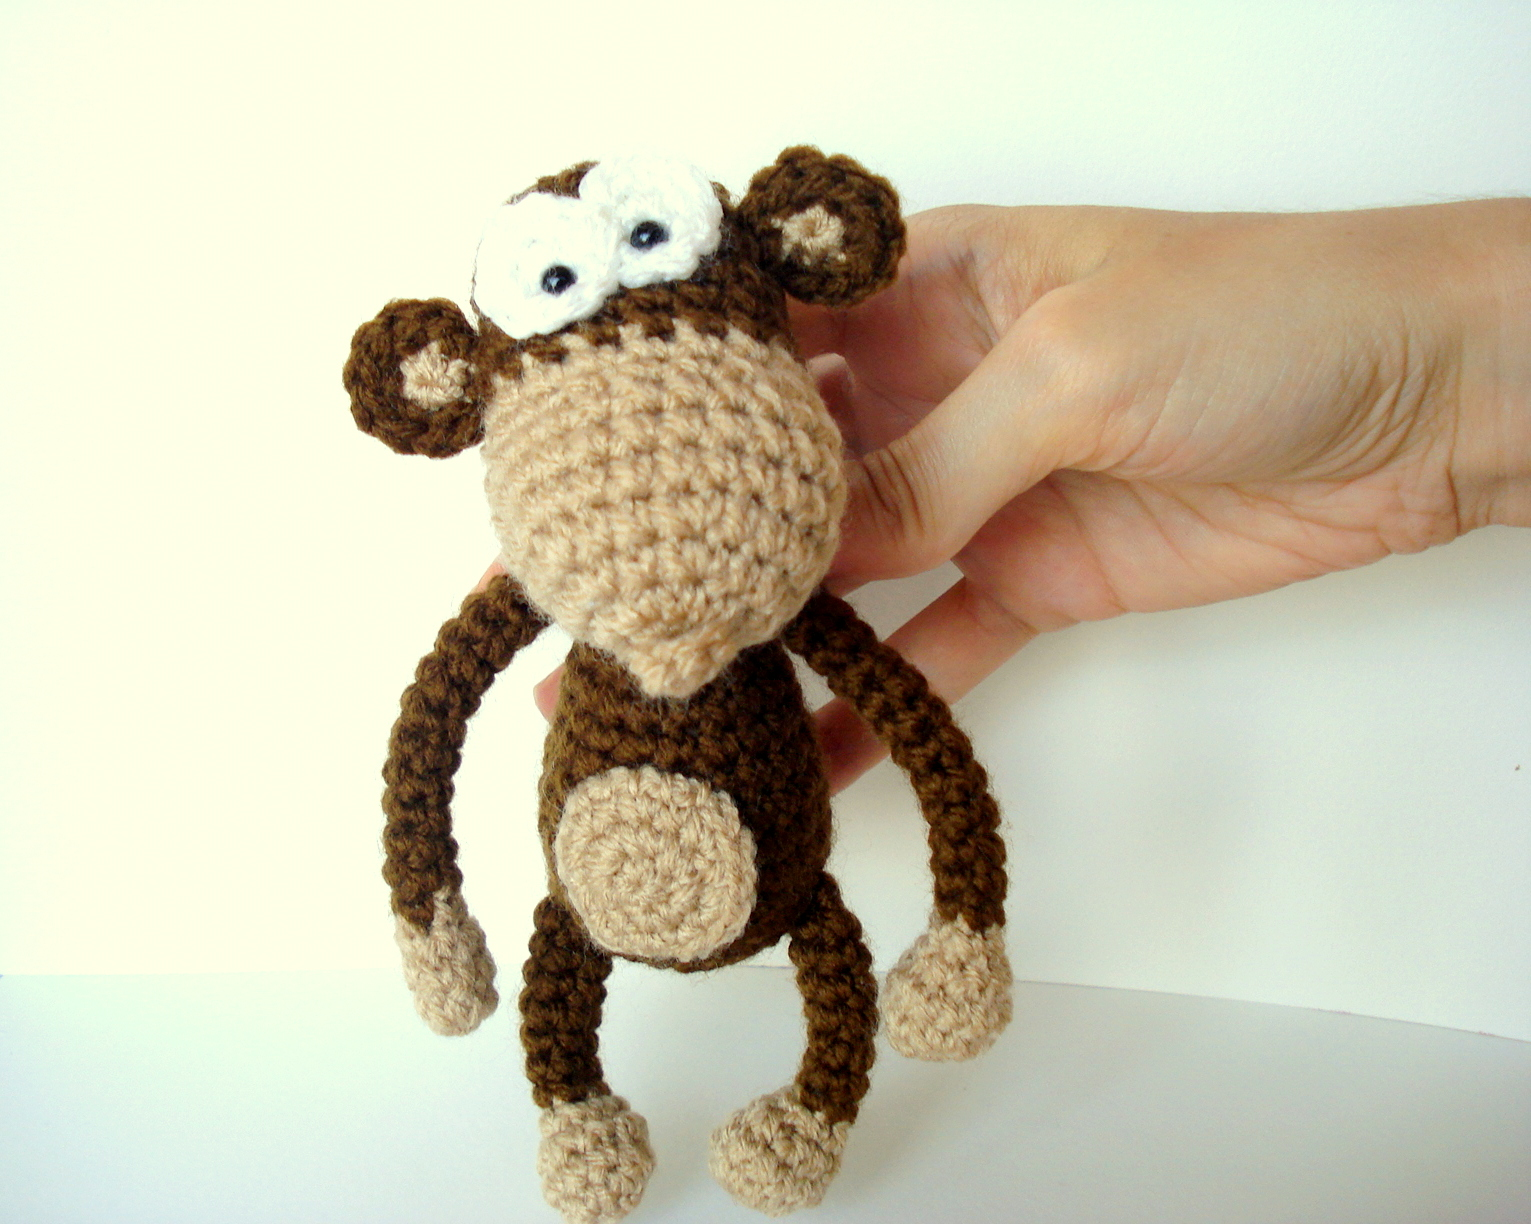 ... : Amigurumi Monkey Pattern, Crocheted Monkey Pattern with Banana